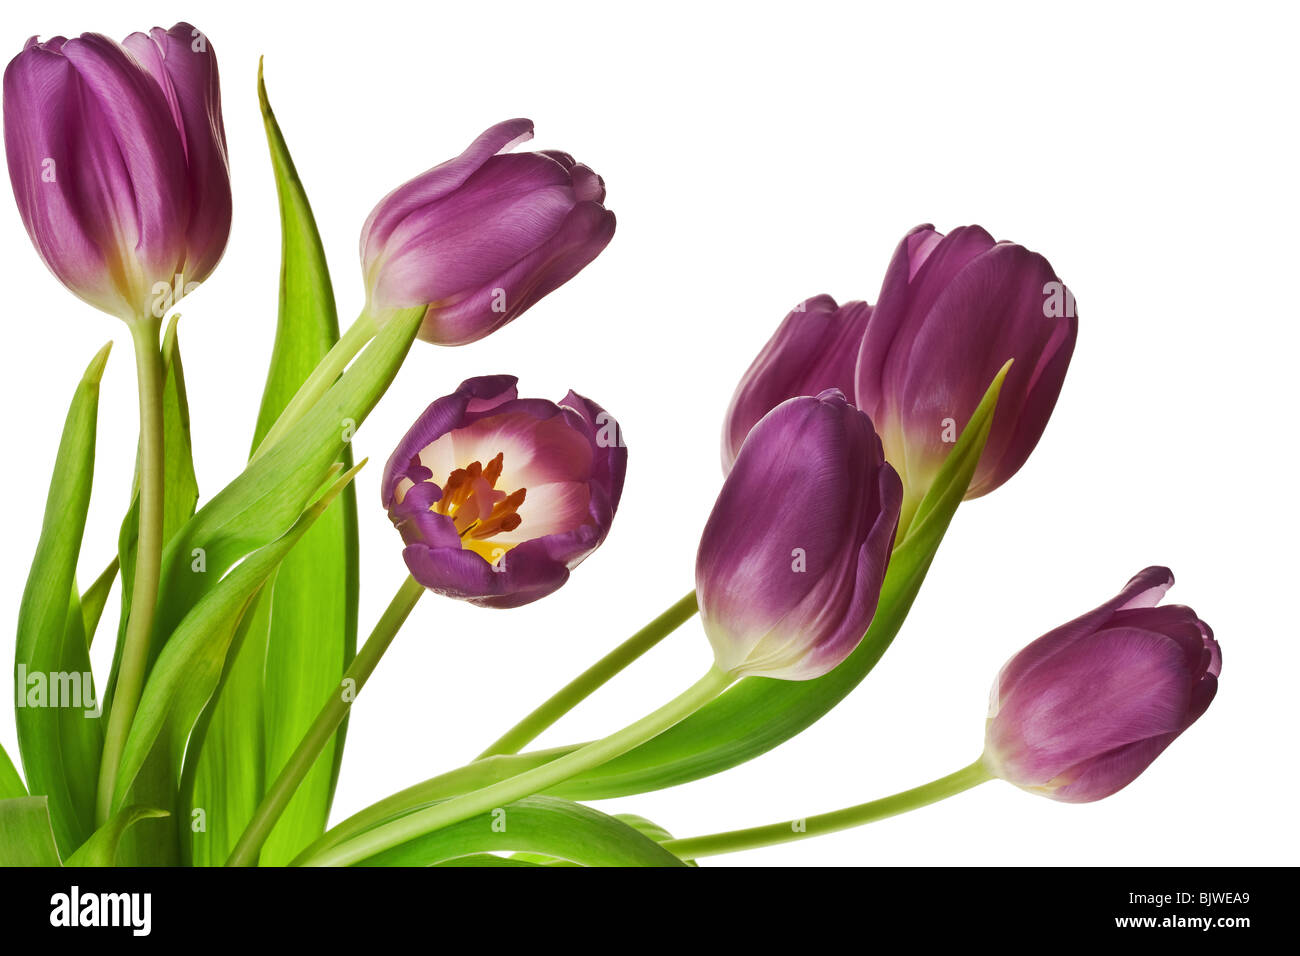 Purple Spring Tulips Isolated on a Pure White Background - Stock Image